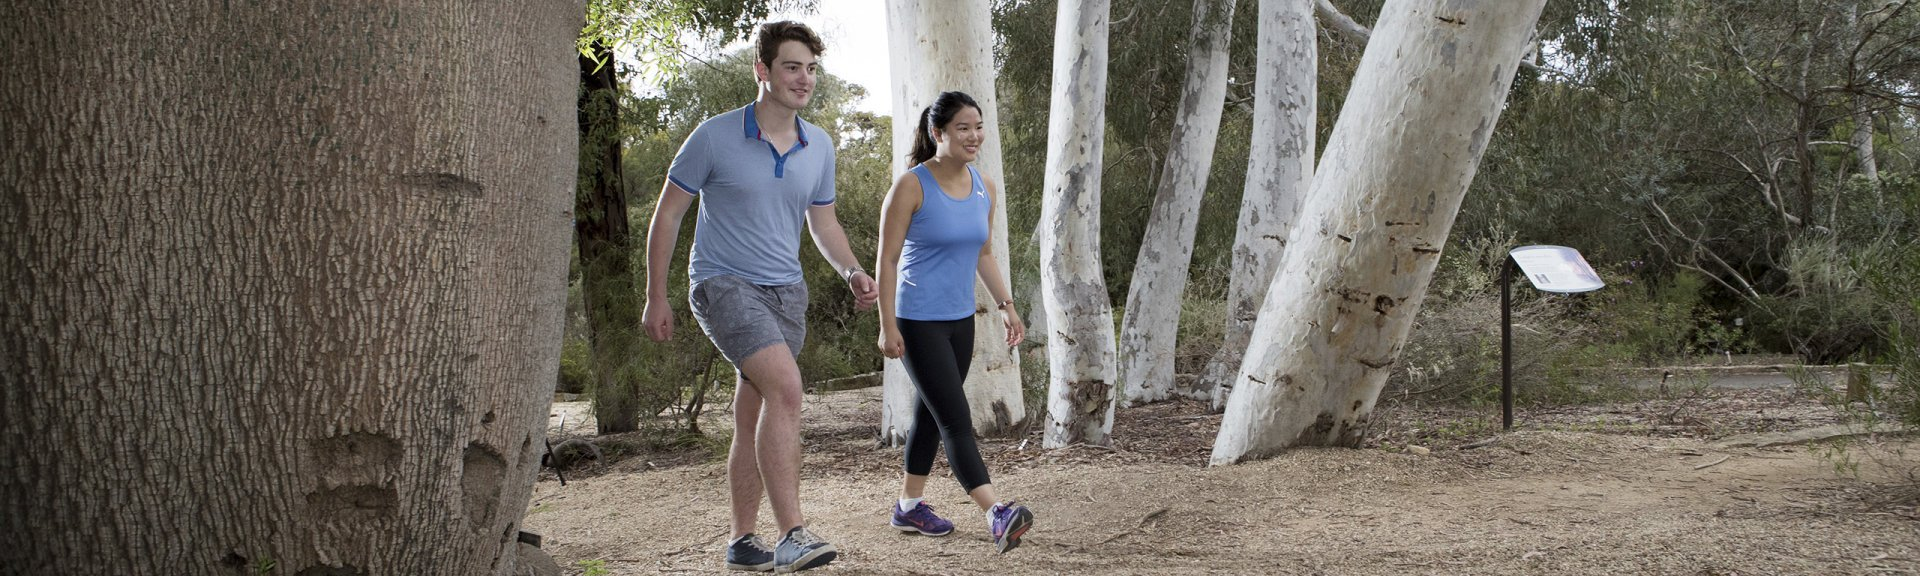 Visitors get moving along the Eucalypt Discovery Walk